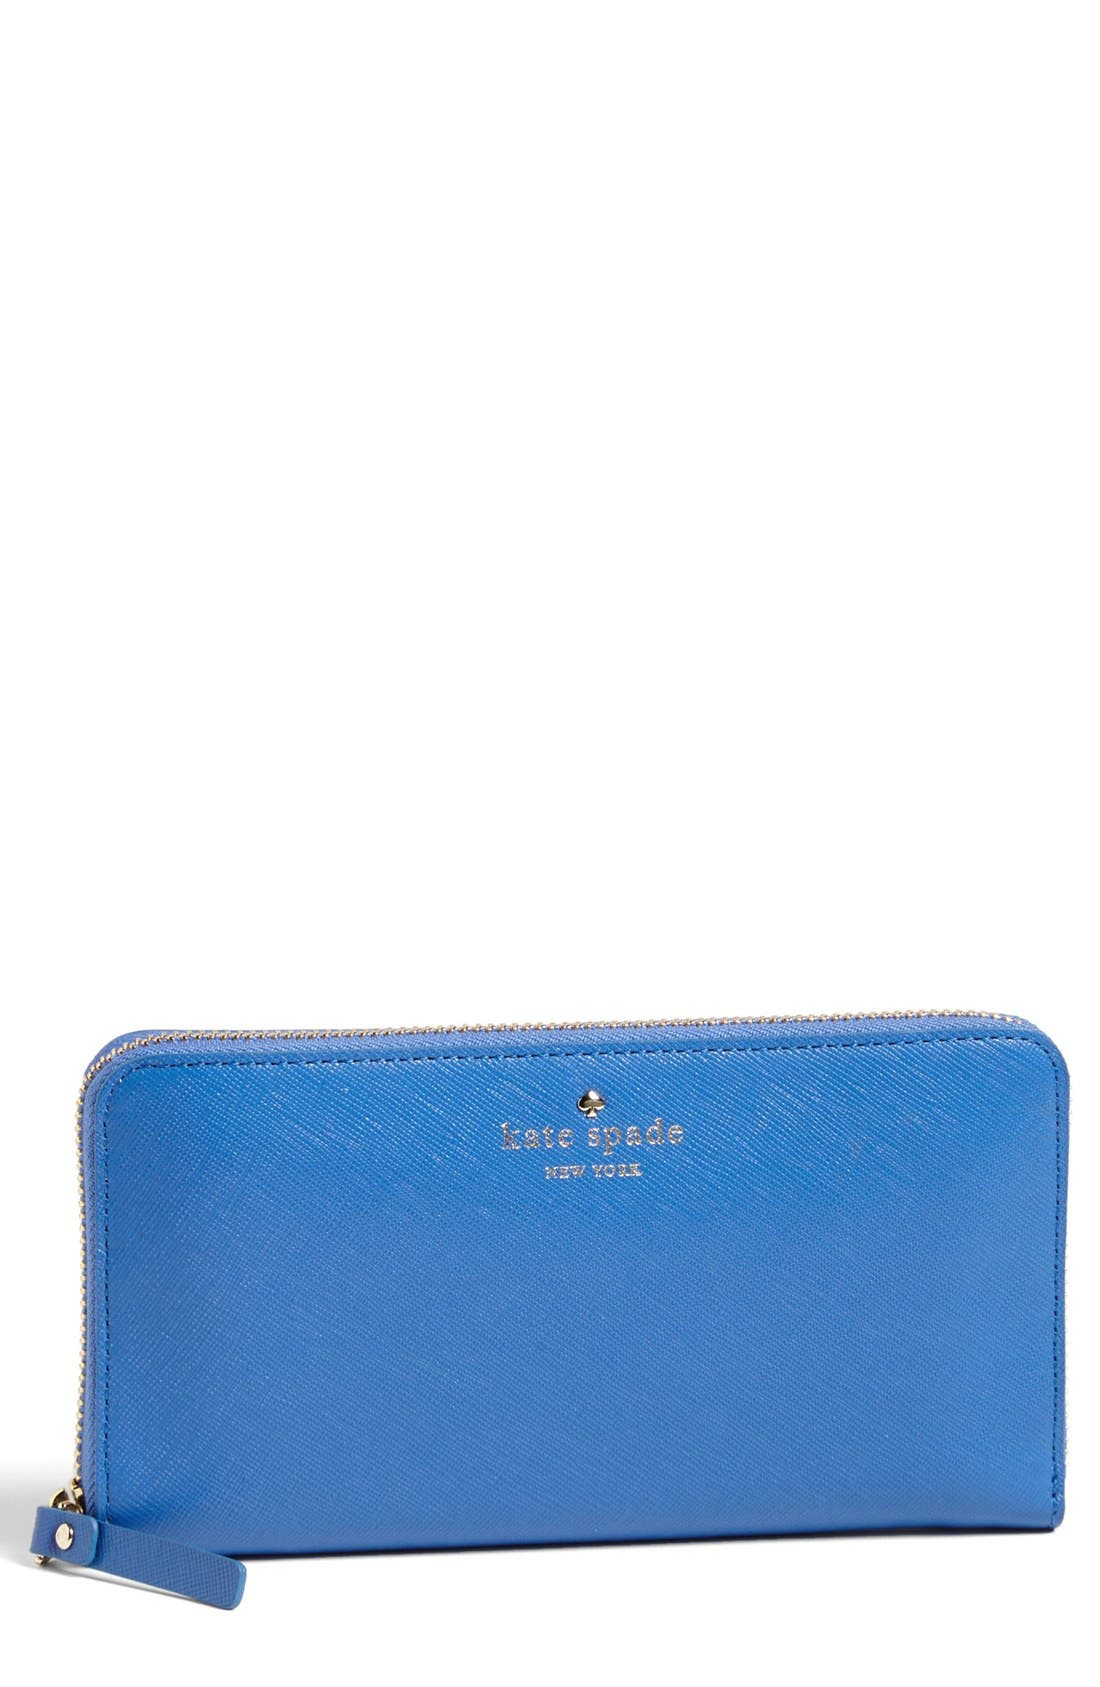 Main Image - kate spade new york 'cherry lane - lacey' wallet